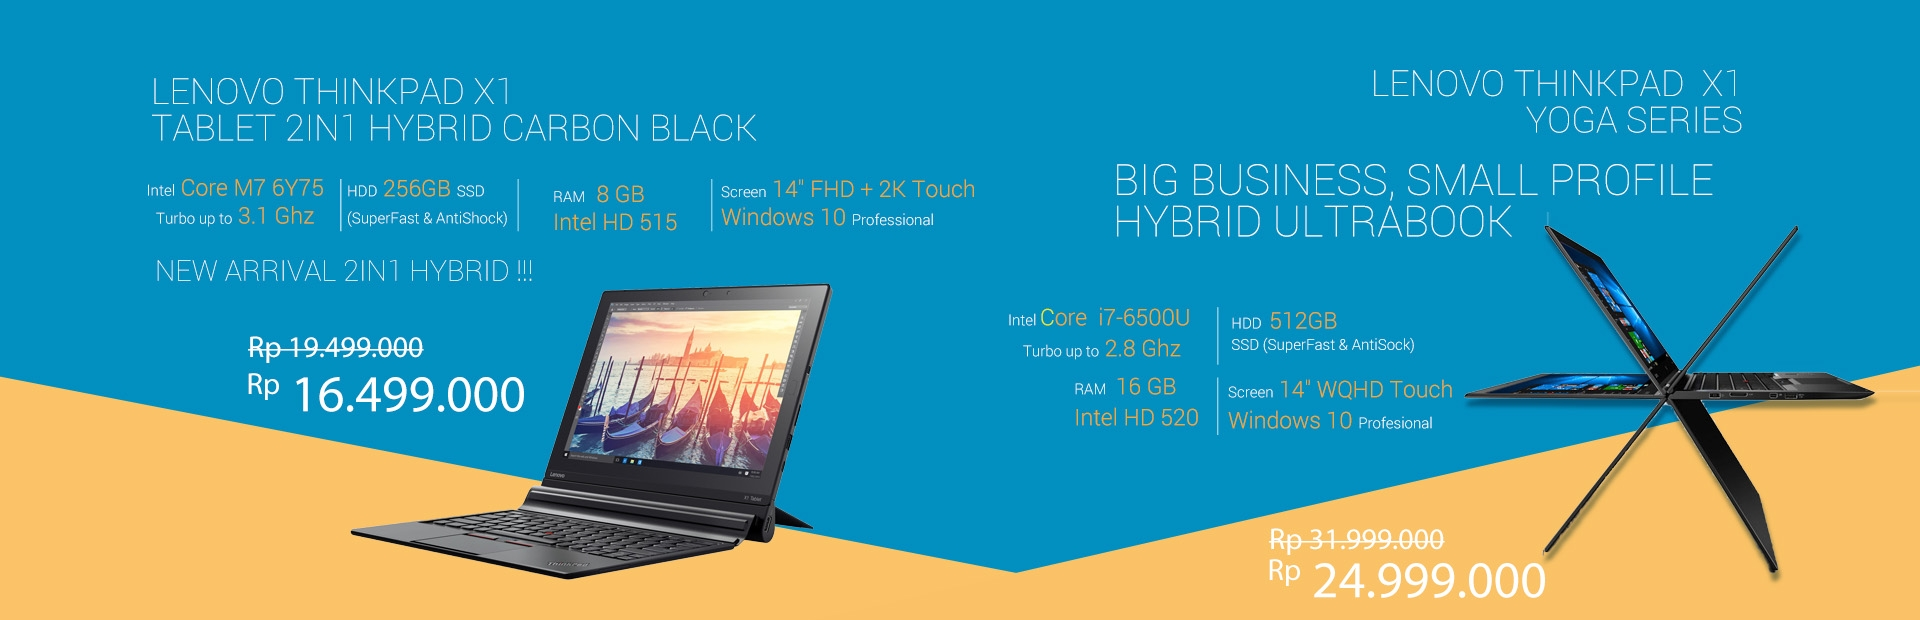 LENOVO ThinkPad X1 Tablet 2in1 Hybrid Carbon Black-LENOVO ThinkPad  X1-Yoga Series